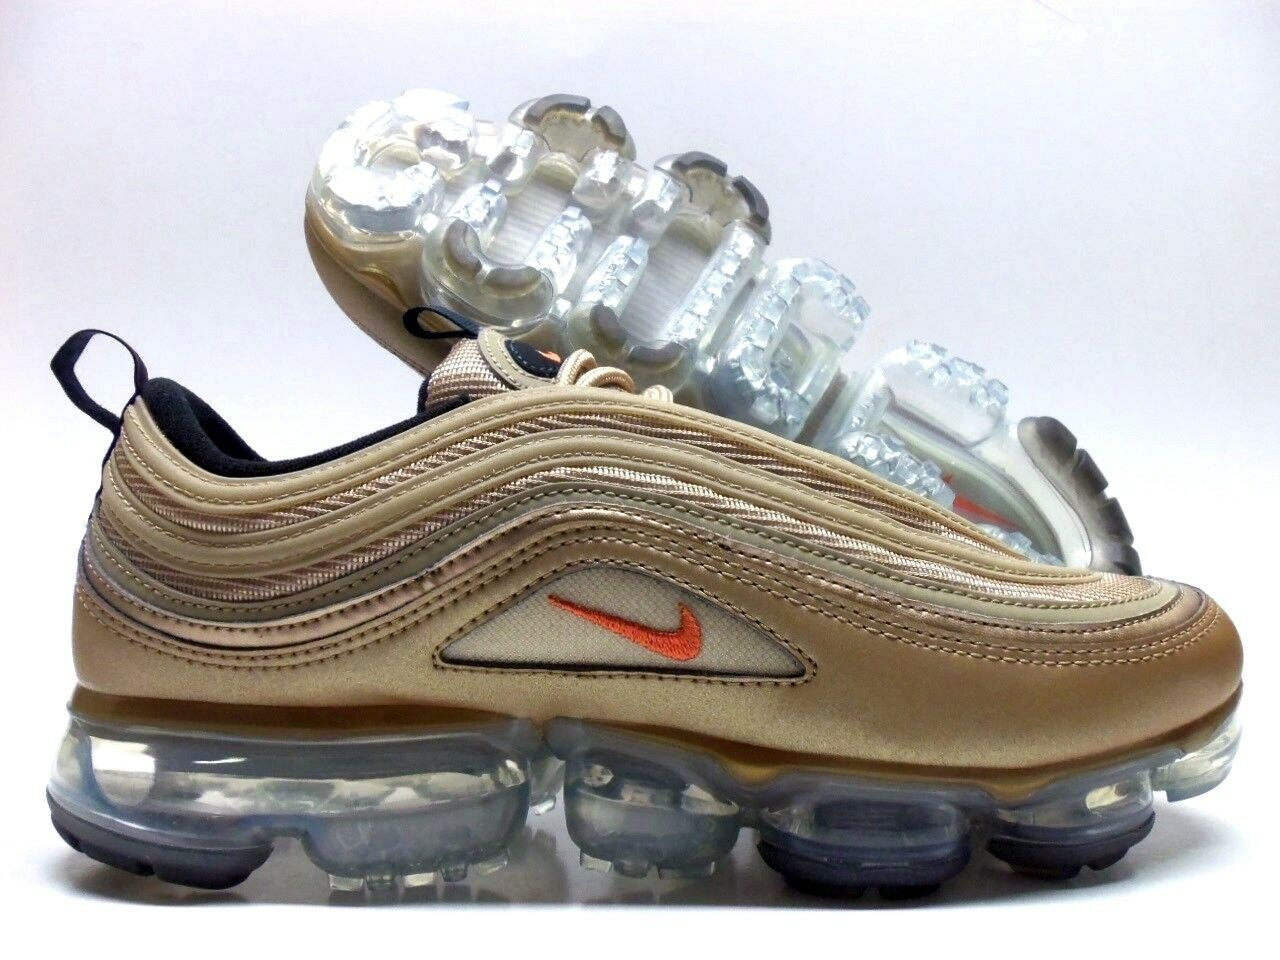 NIKE AIR VAPORMAX '97 blueR VINTAGE CORAL-ANTHRACITE SIZE WOMEN'S 6